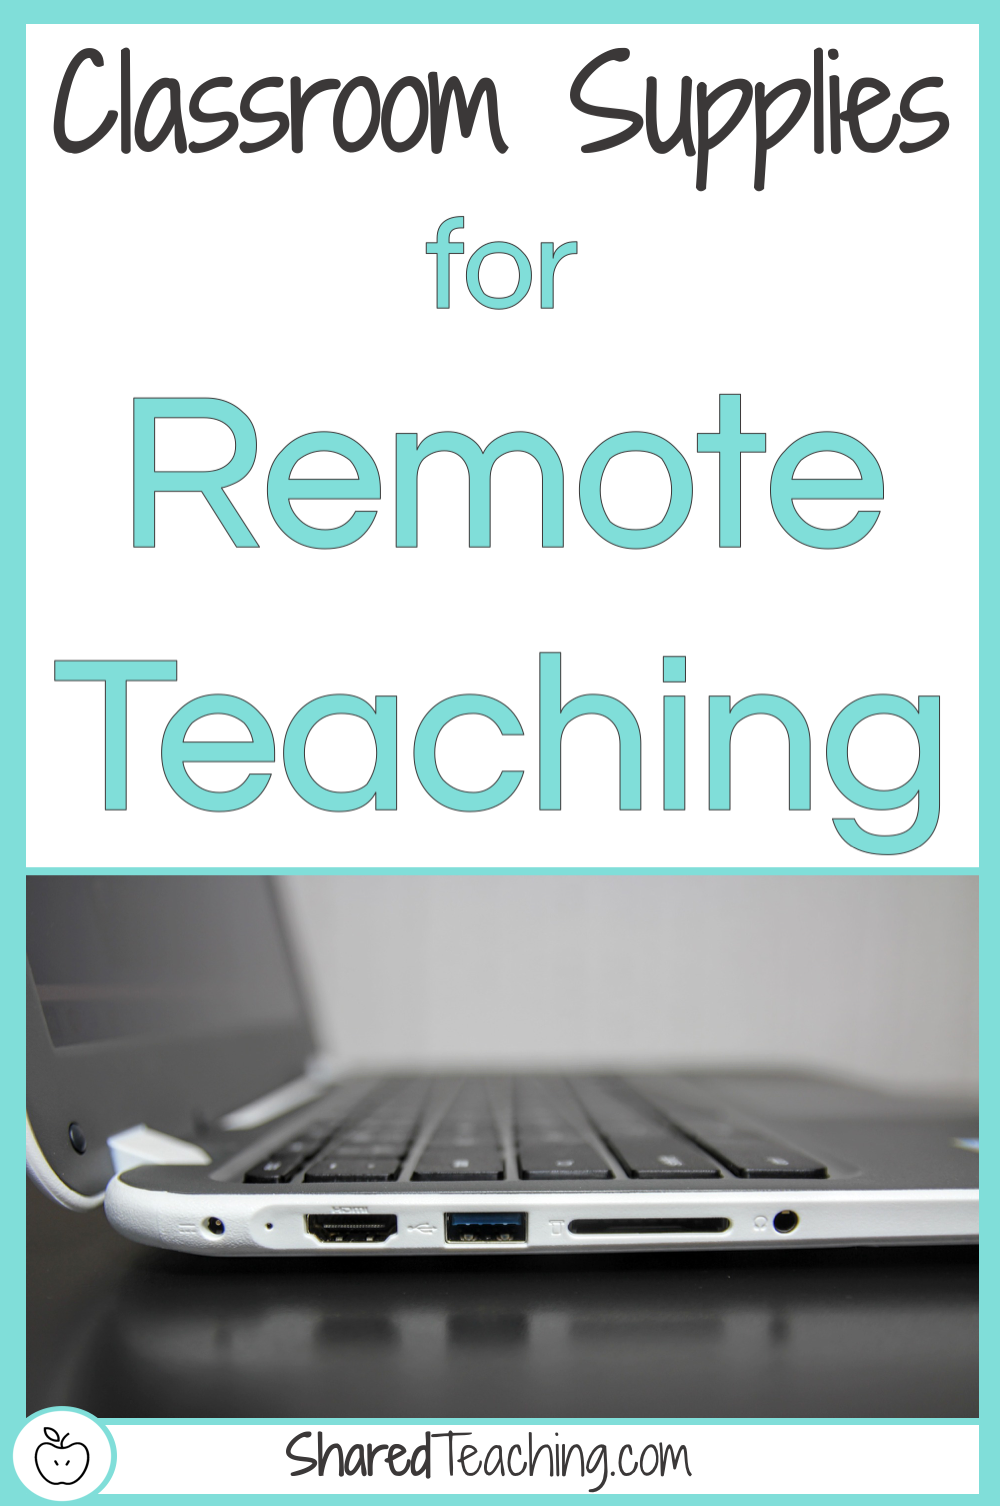 Classroom Supplies for Remote Teaching | Need to grab some supplies from your classroom to start distance learning? Click here to find my top needed classroom supplies.